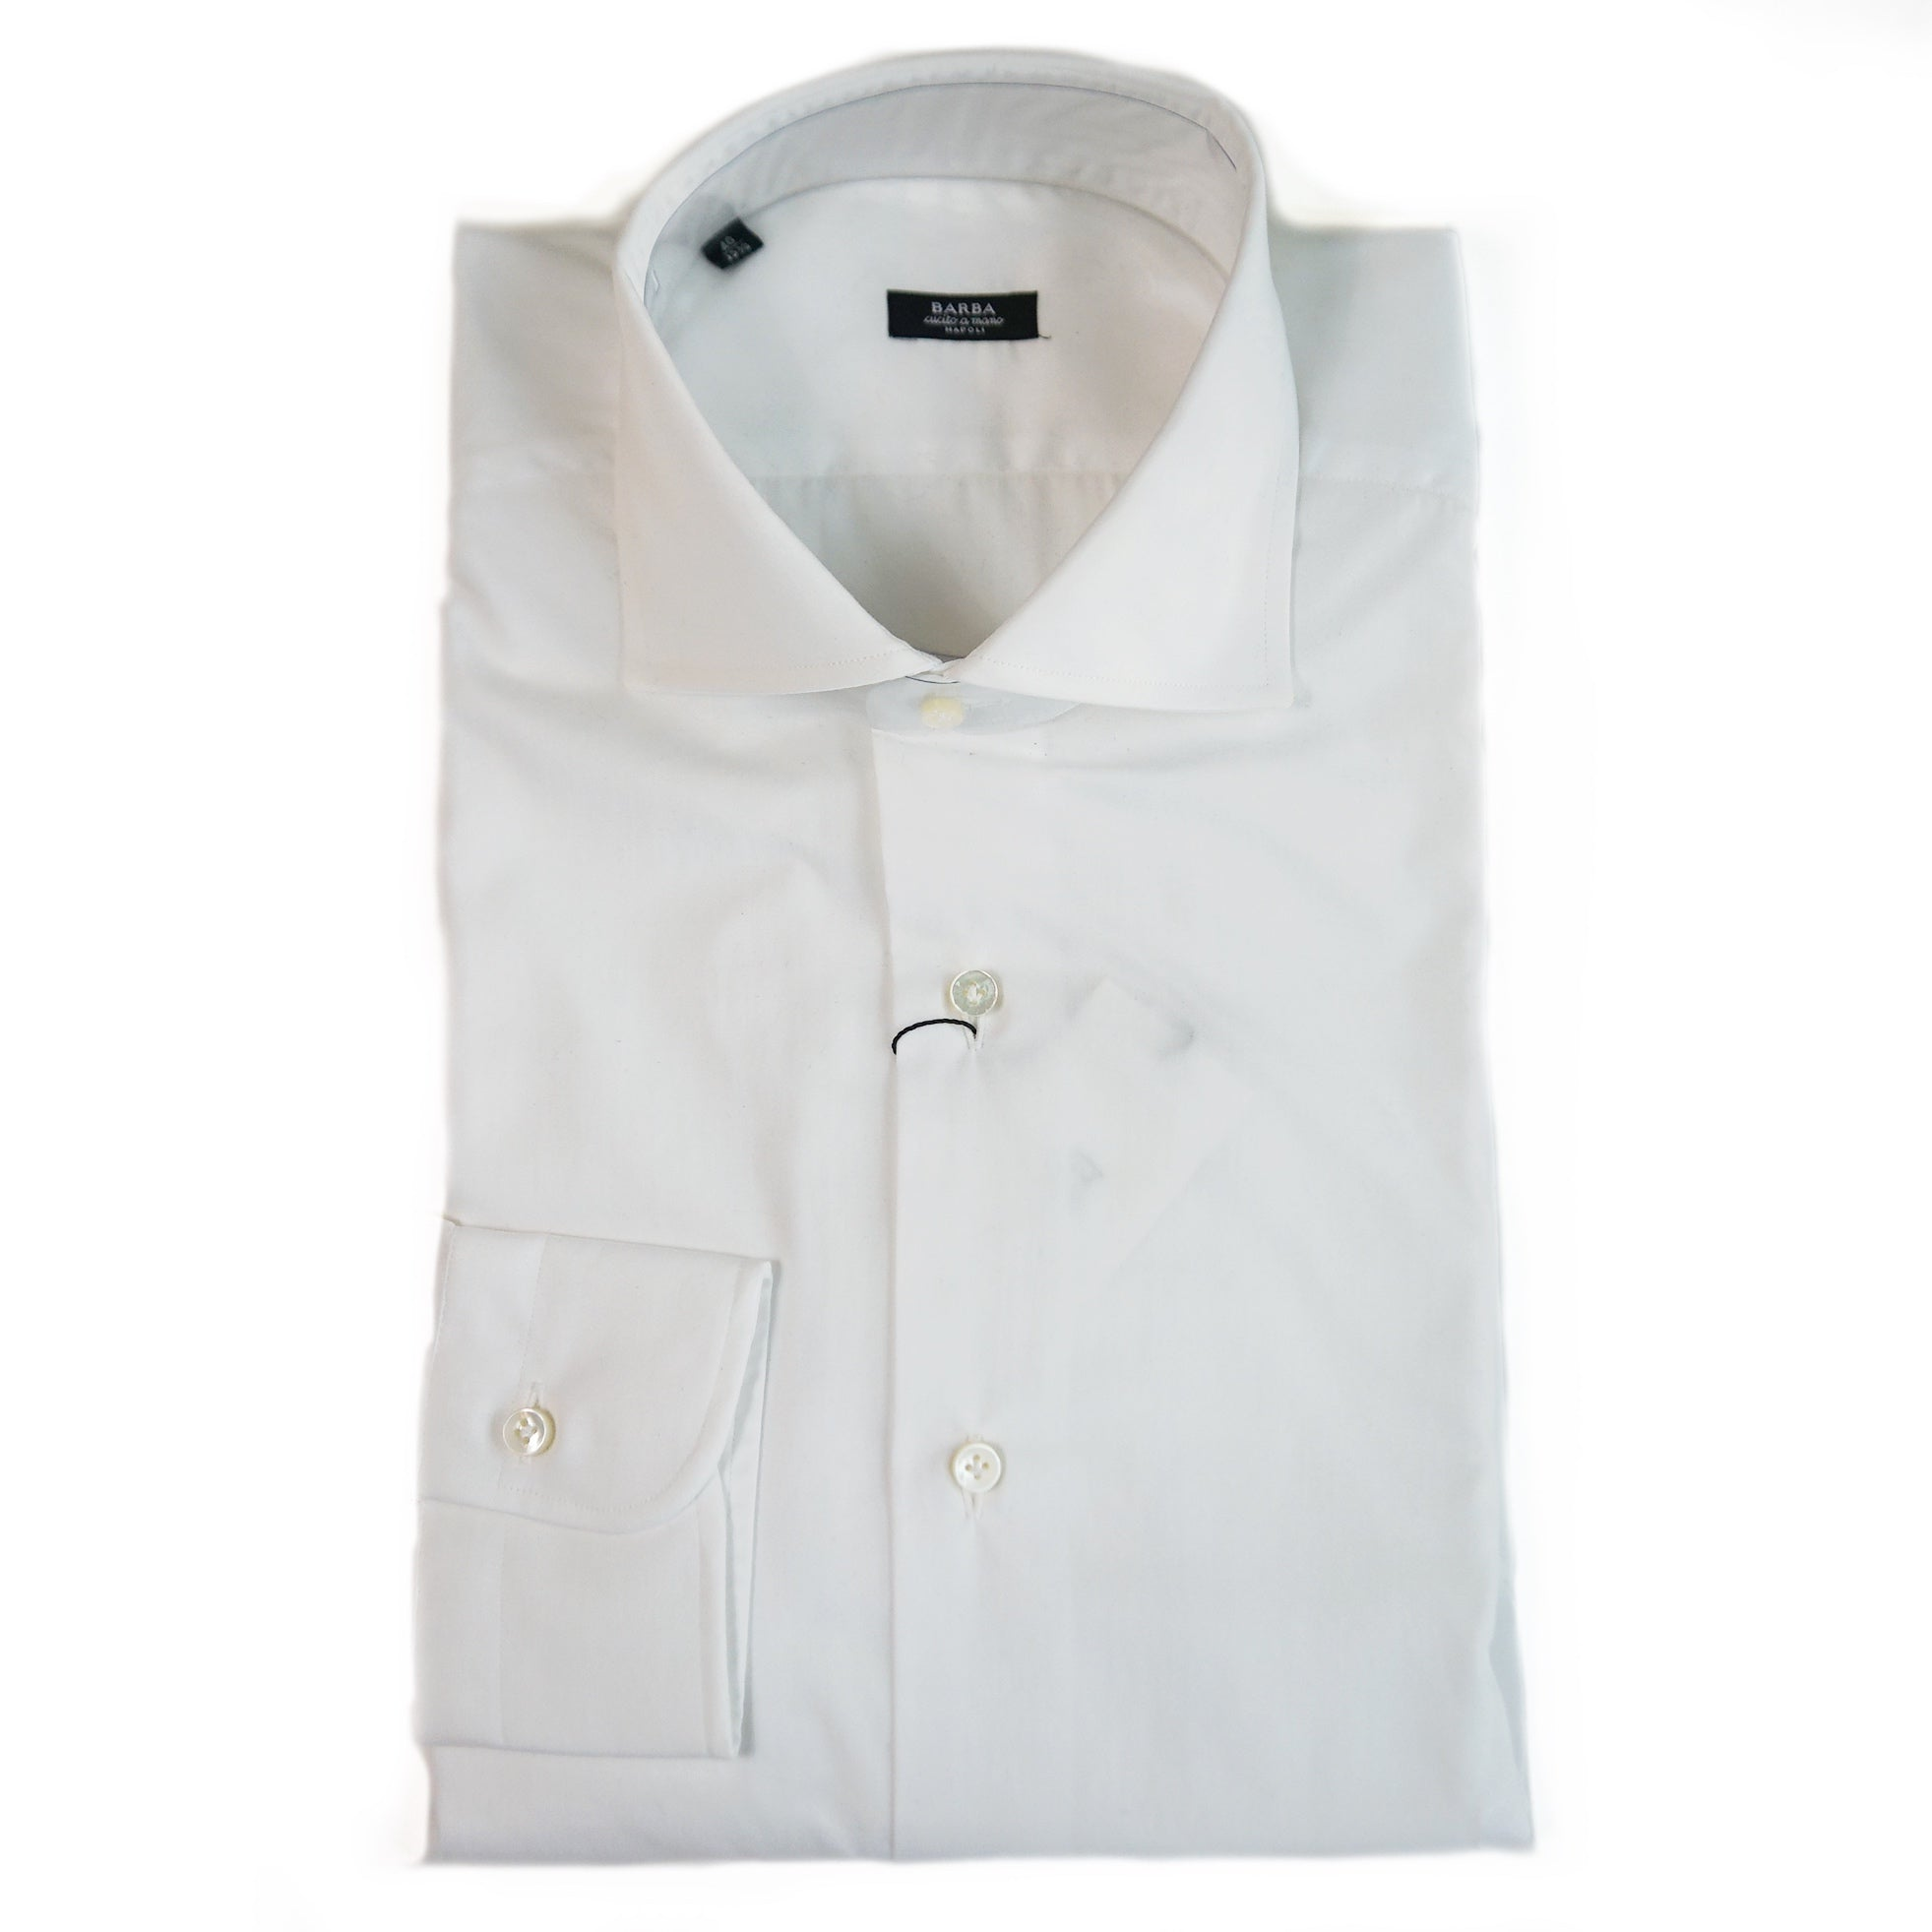 Barba White Shirt